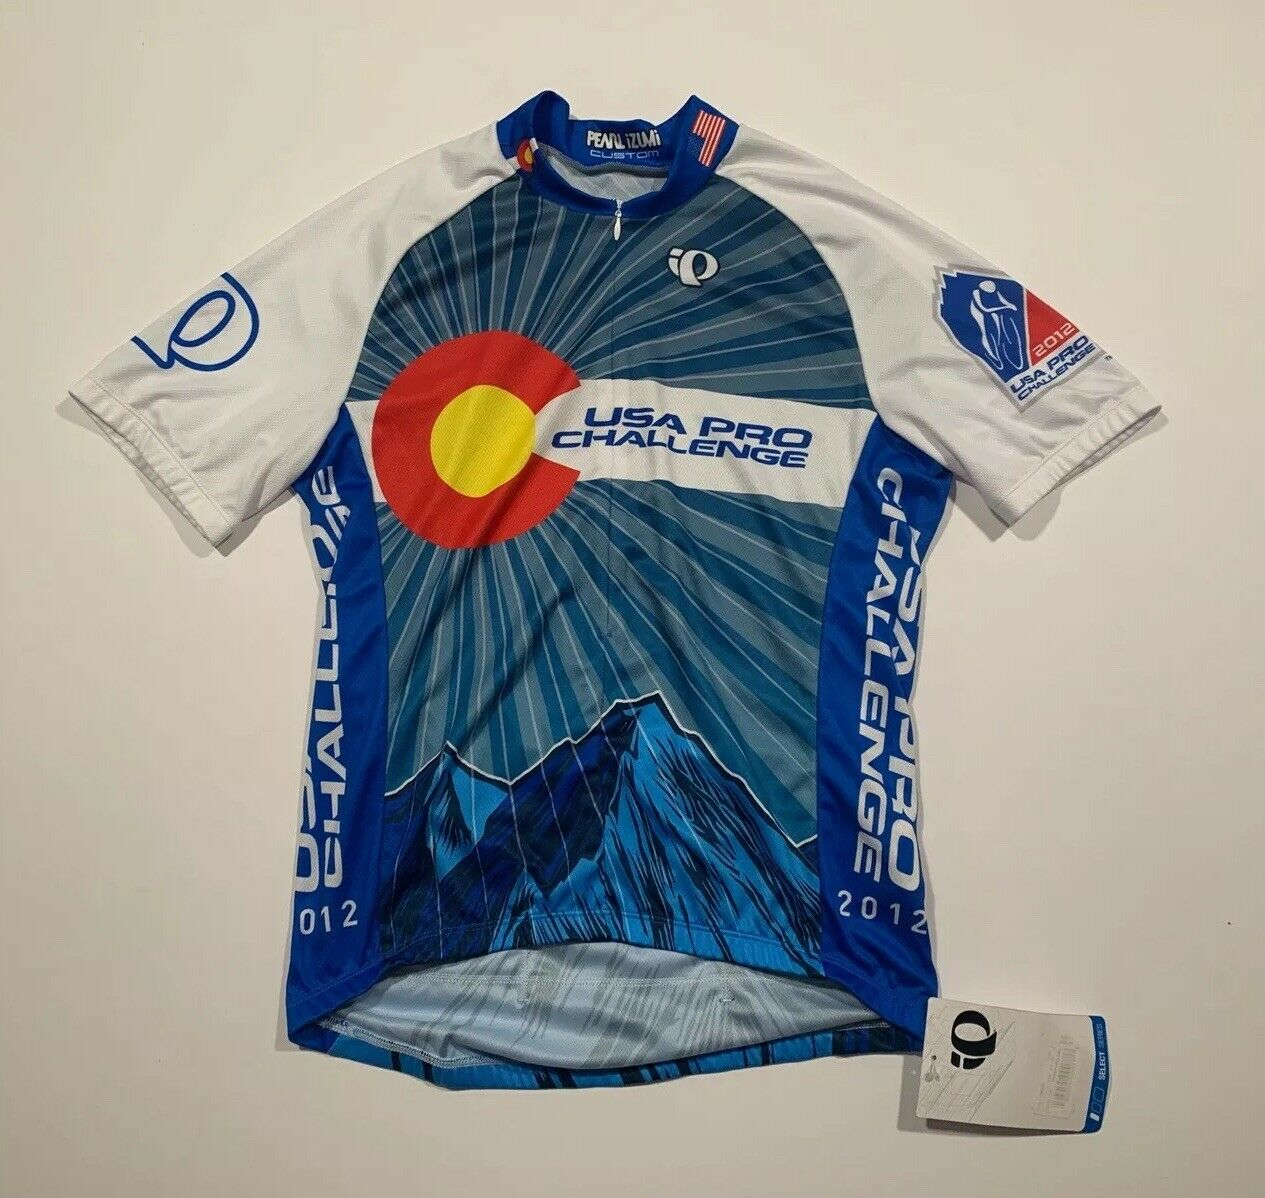 New PEARL IZUMI Small Cycle Bike Jersey colorado Short Sleeve USA Pro Challenge